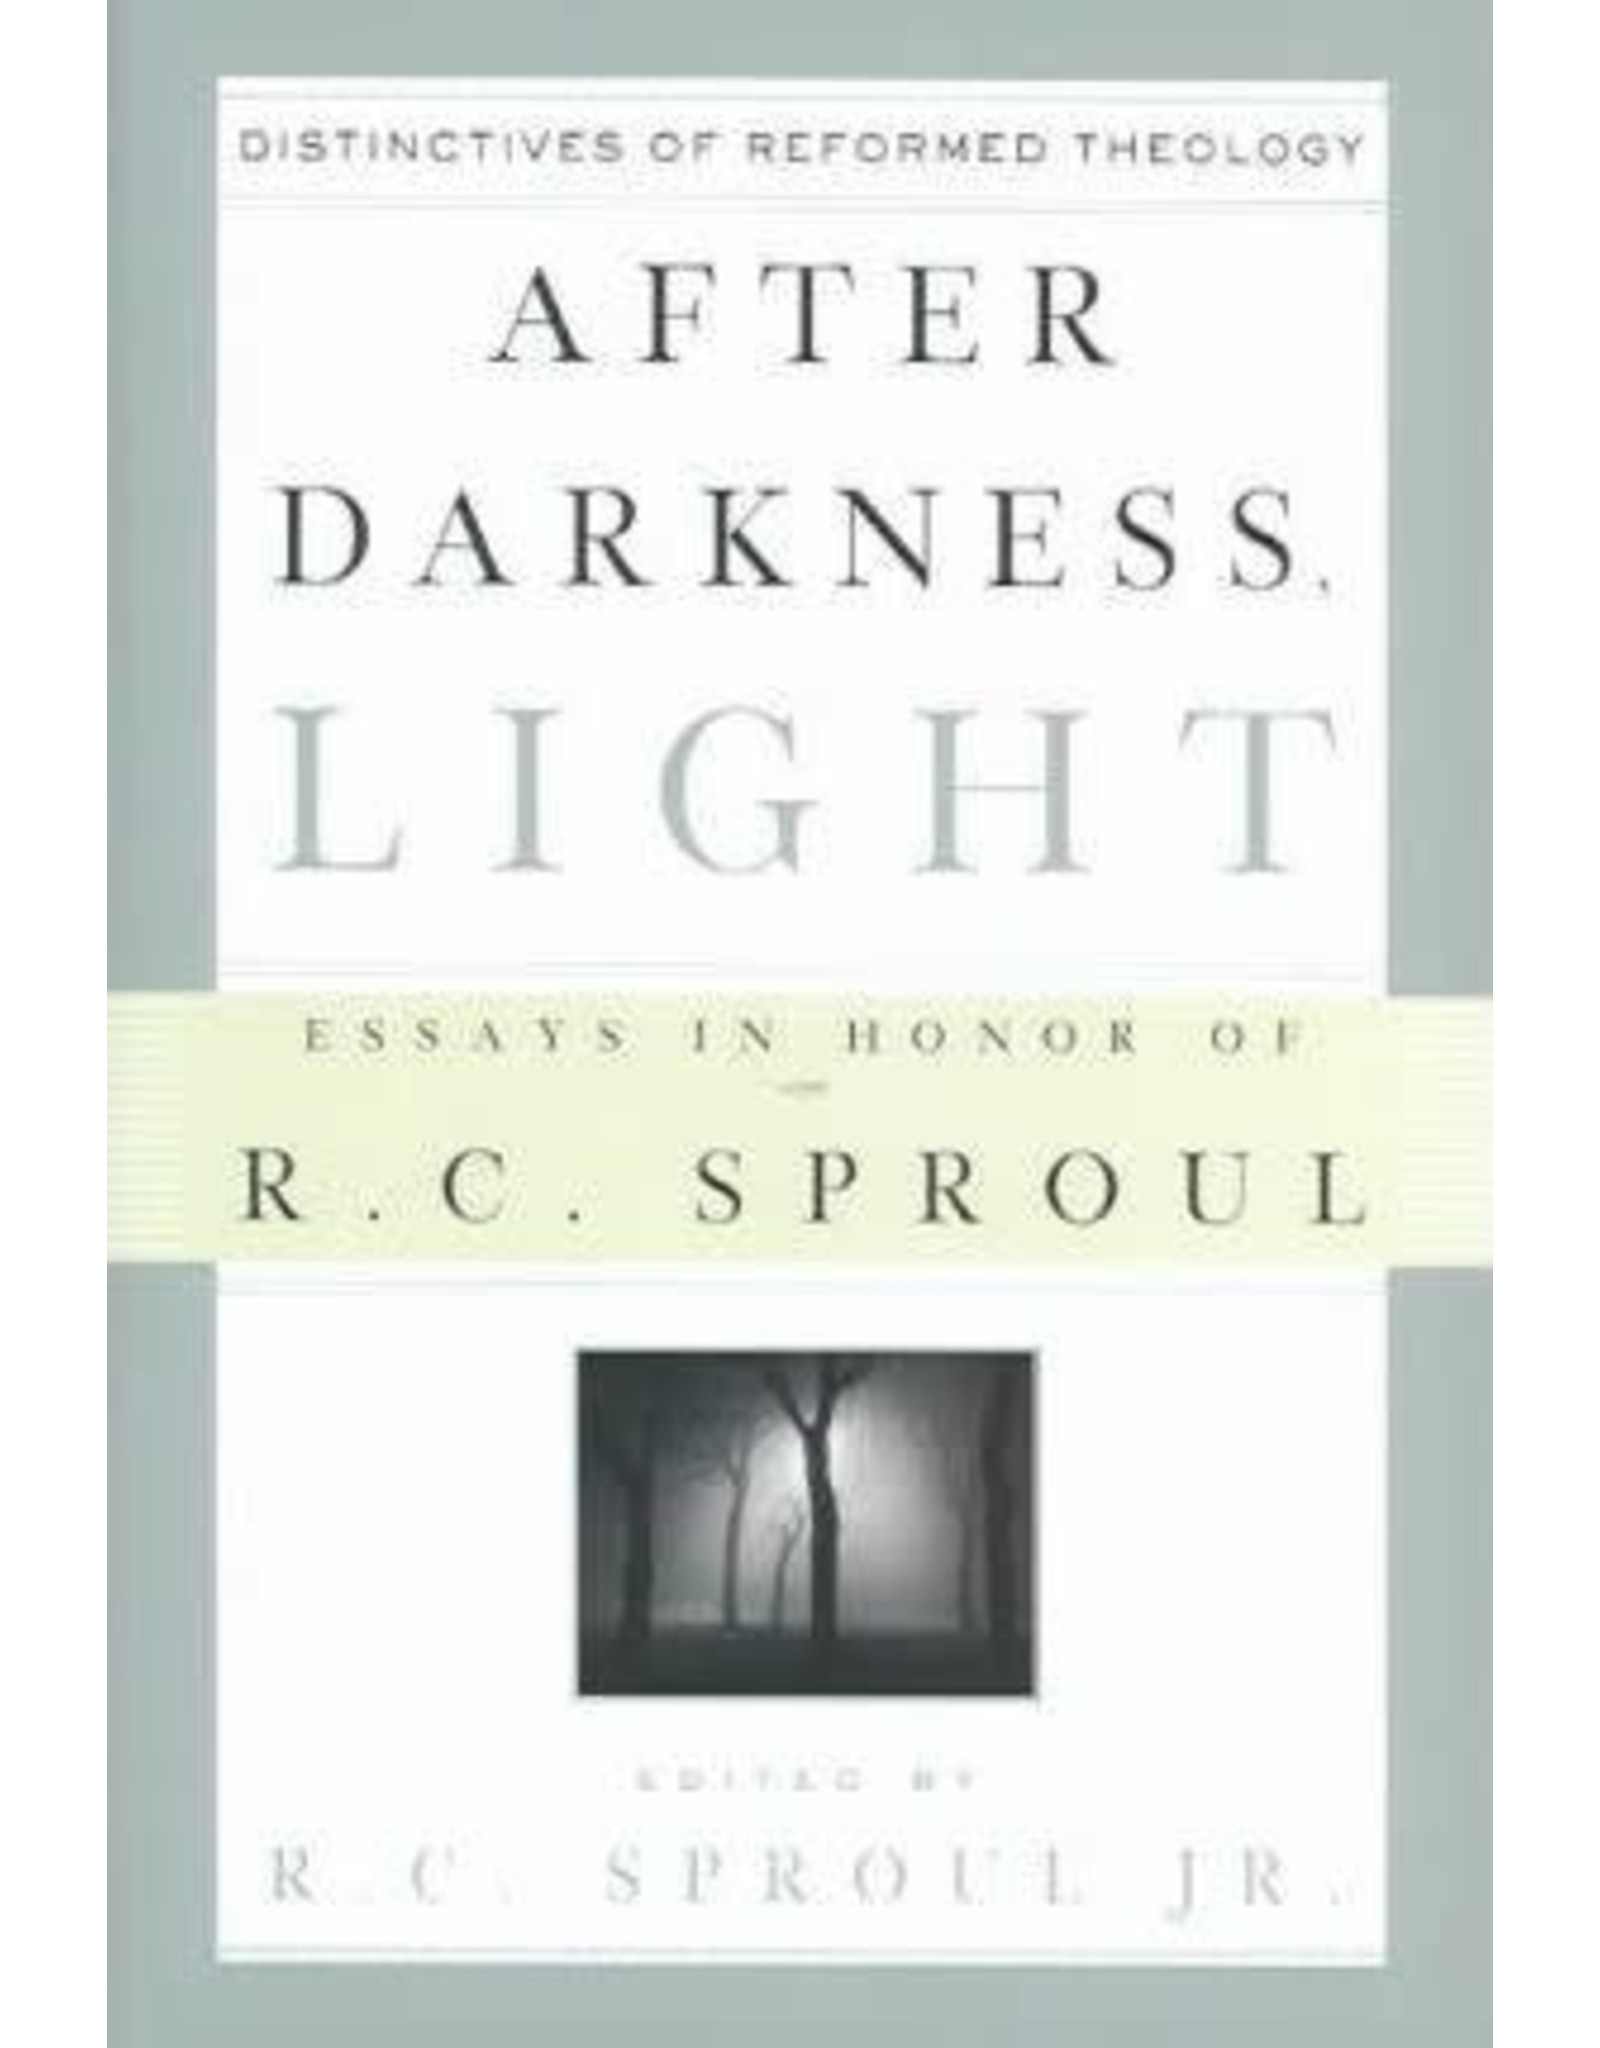 Sproul After Darkness, Light Paperback